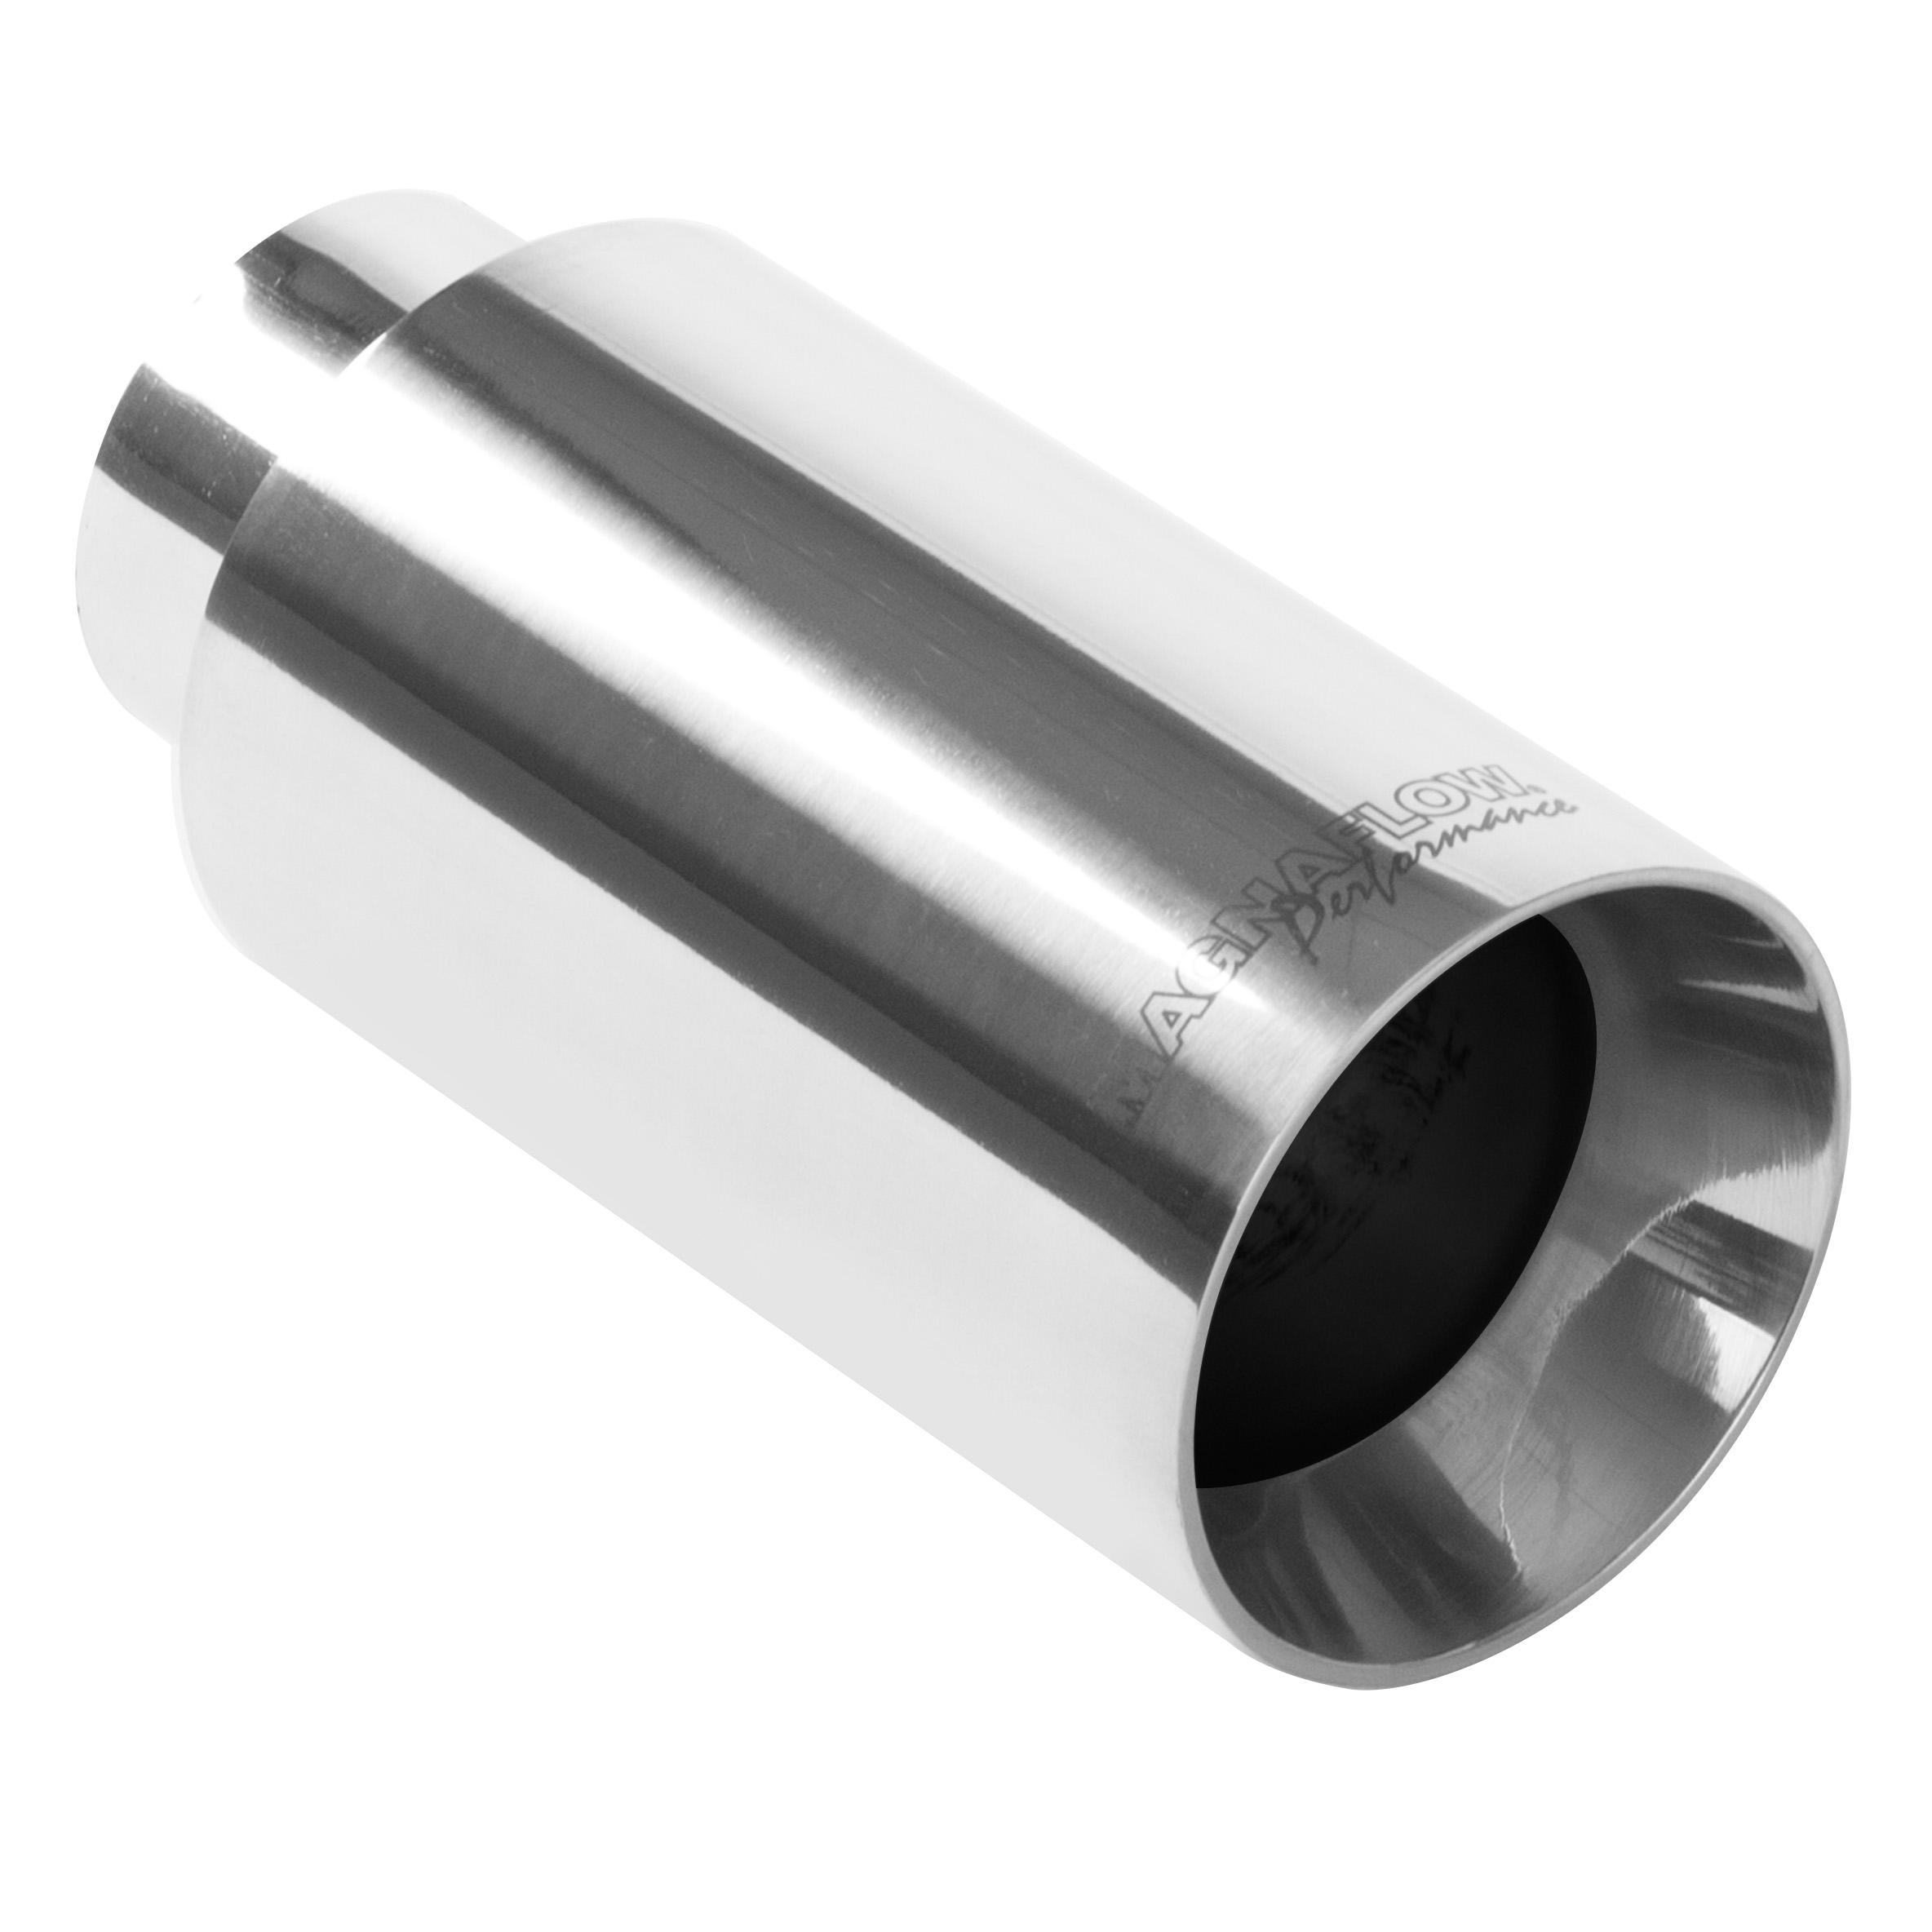 single-exhaust-tip-2-25in-inlet-3-5in-outlet